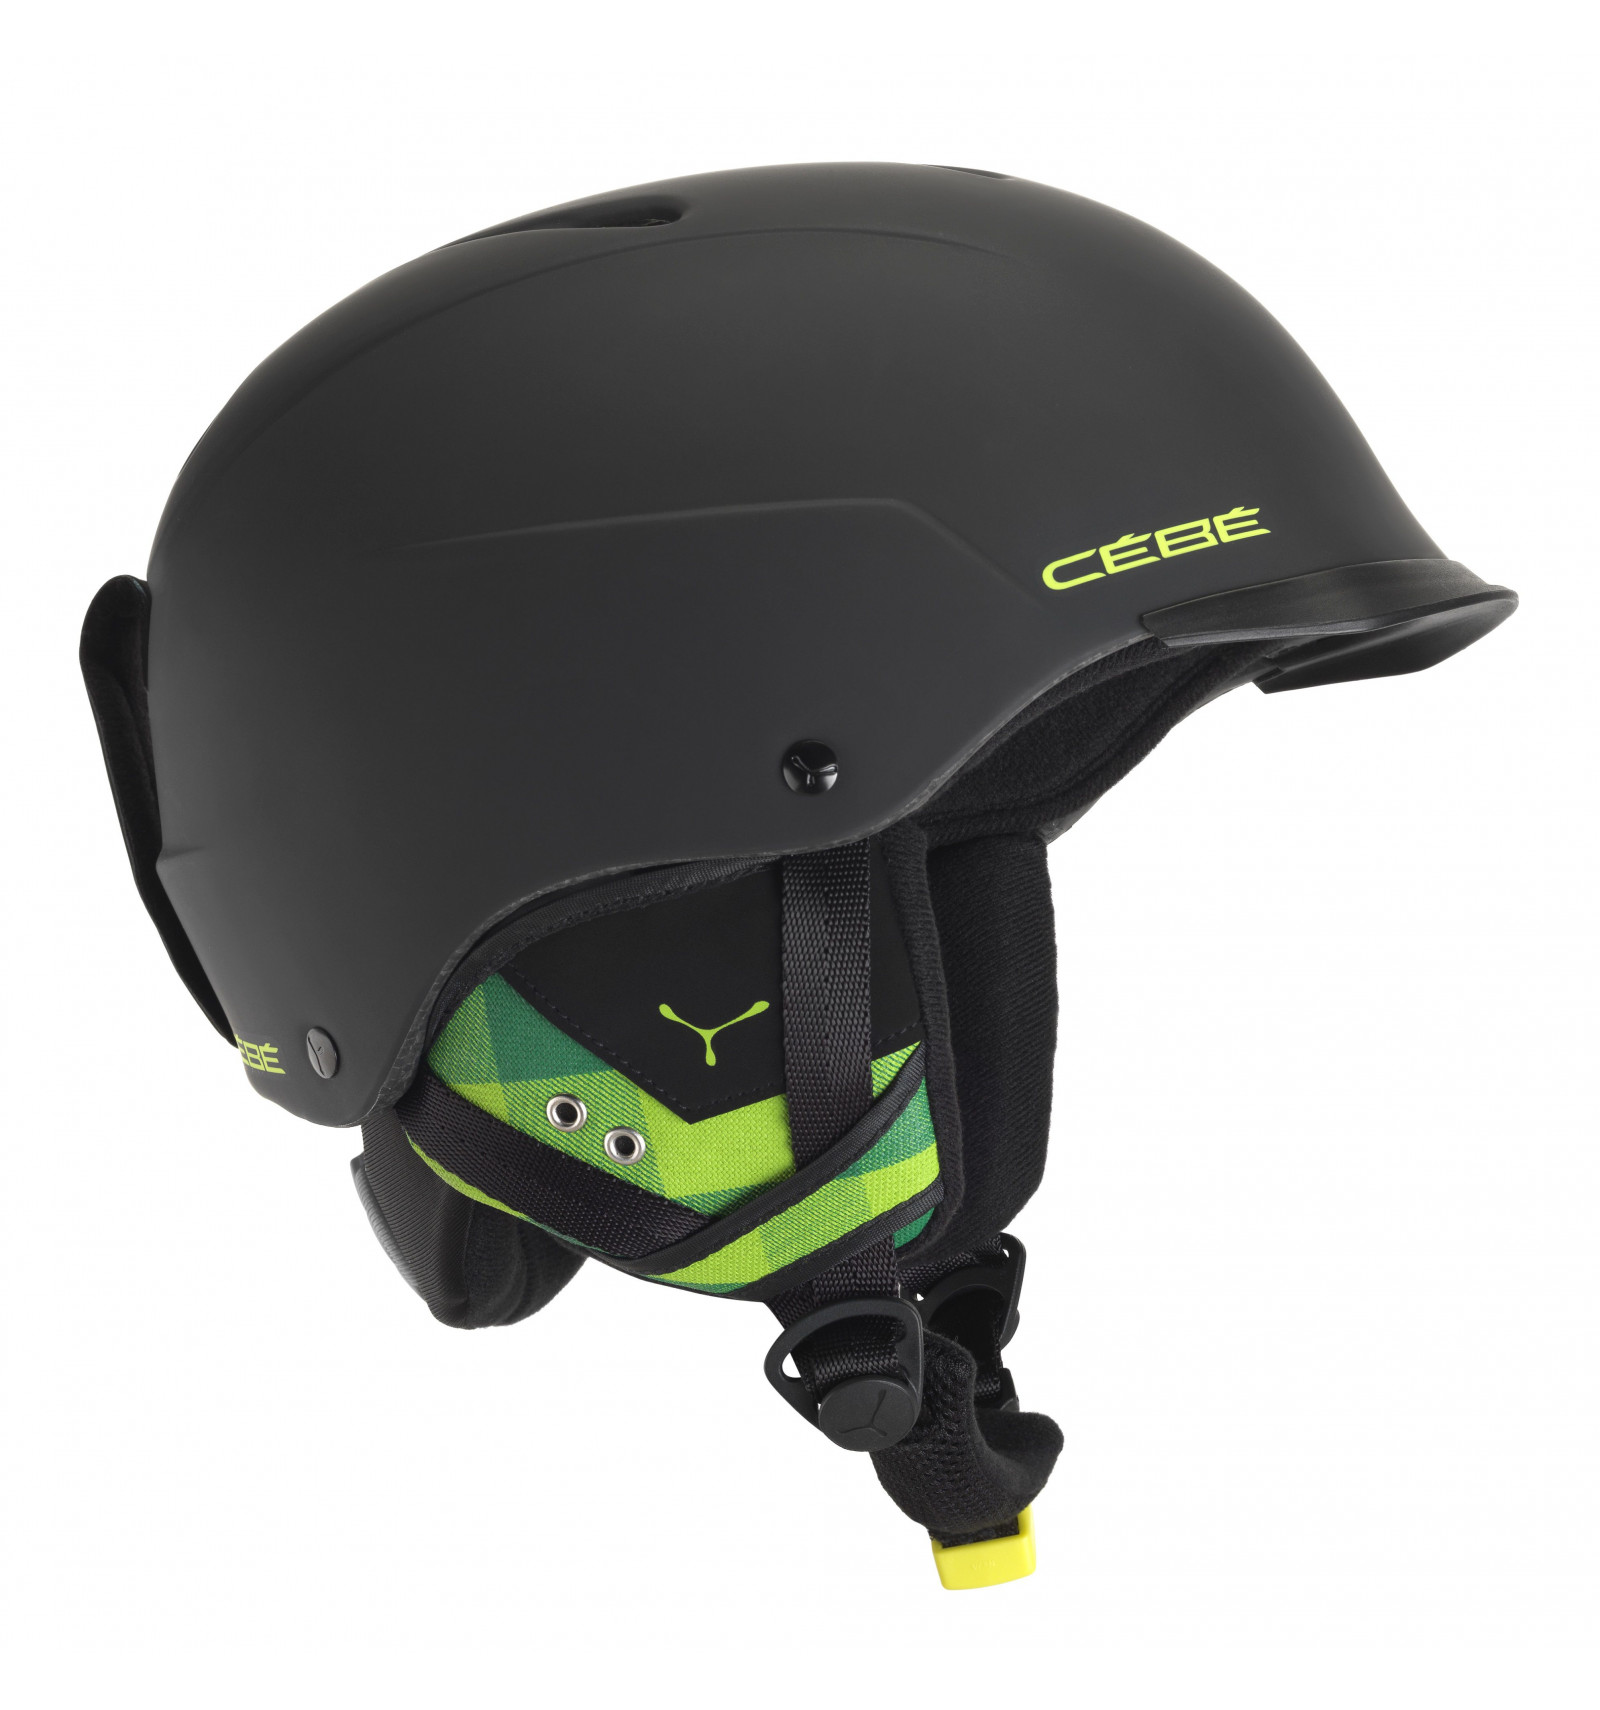 casque de ski c b contest visor alpinstore. Black Bedroom Furniture Sets. Home Design Ideas